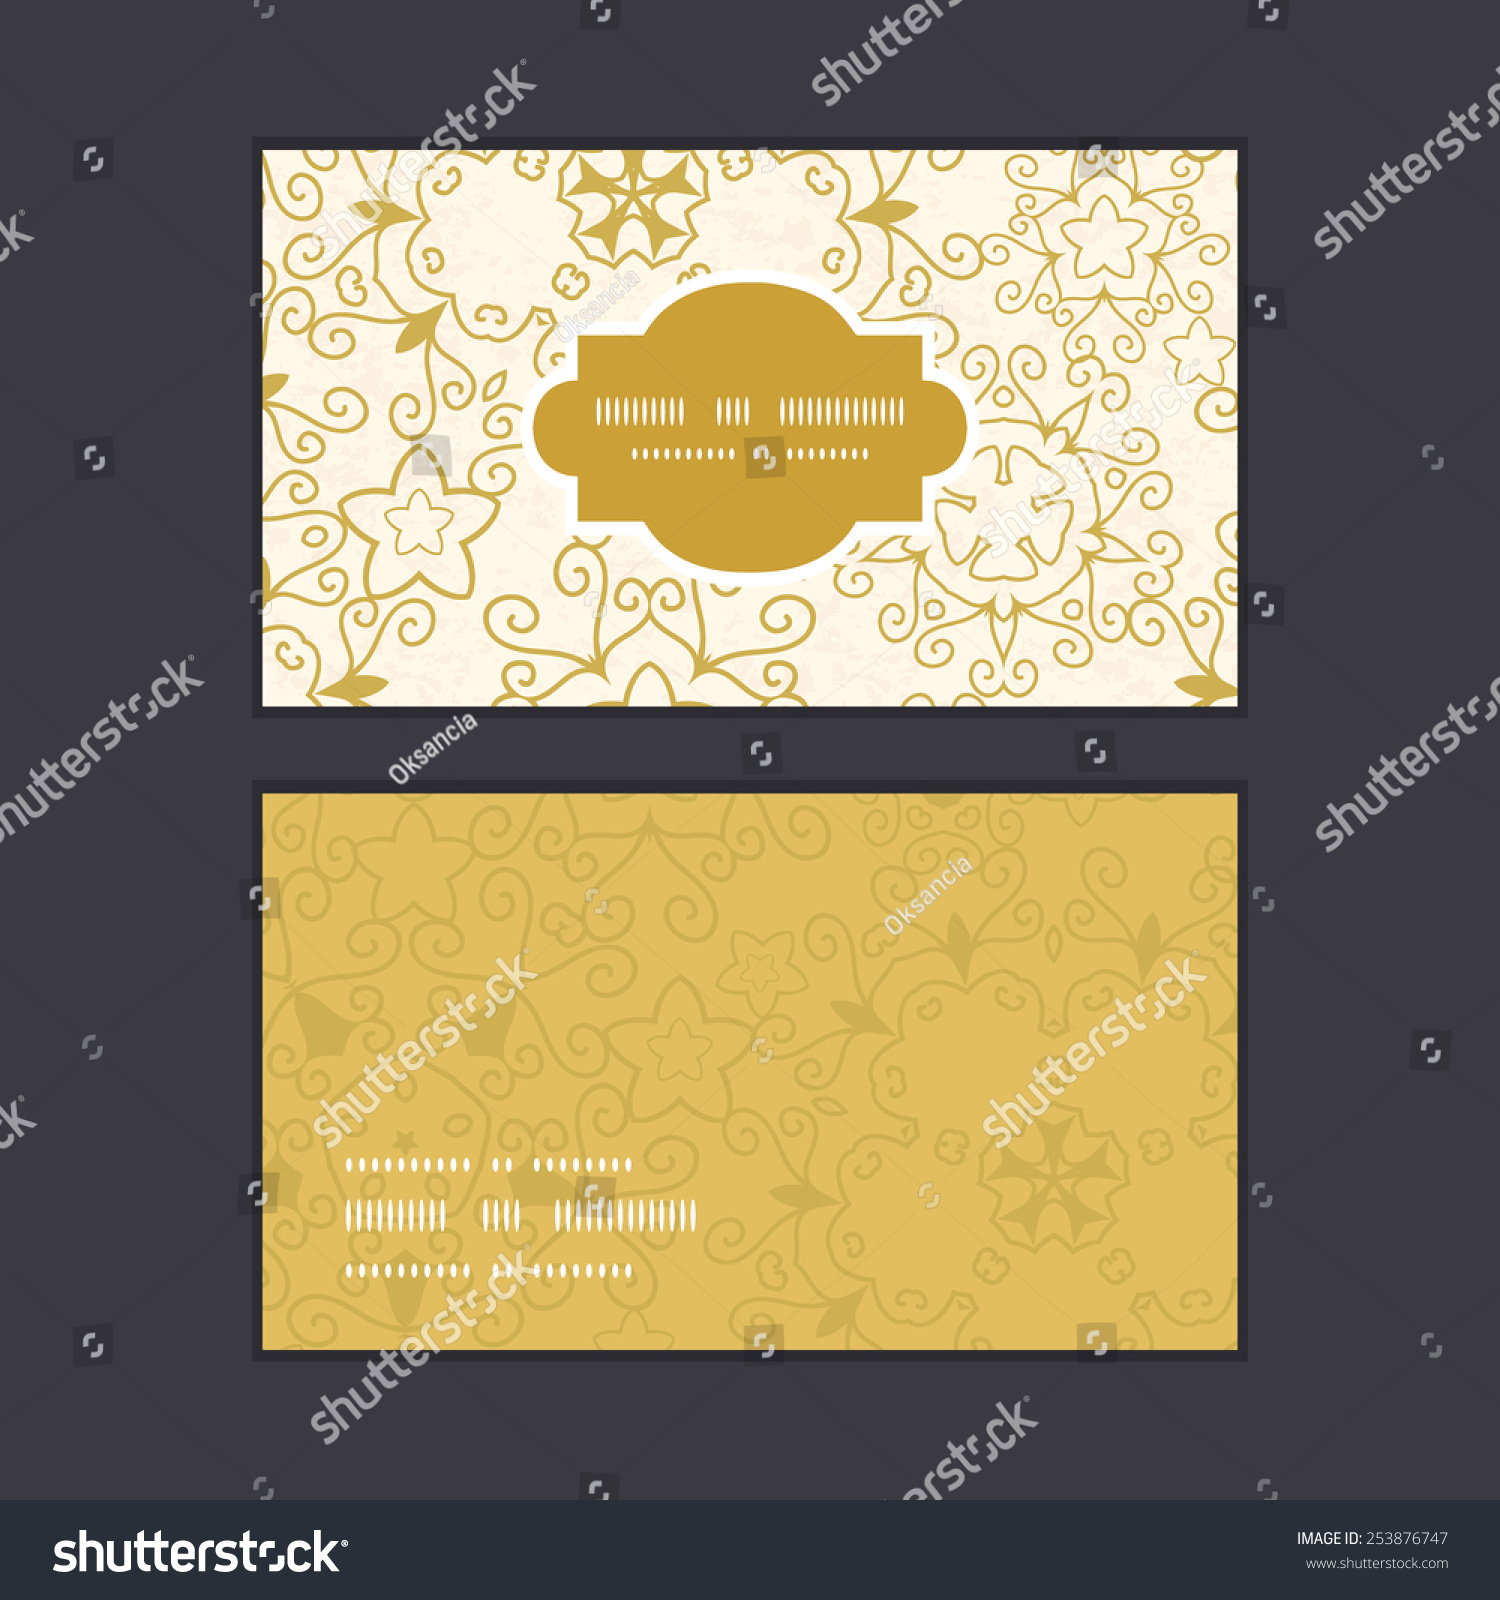 Vector Abstract Swirls Old Paper Texture Stock Vector 253876747 ...